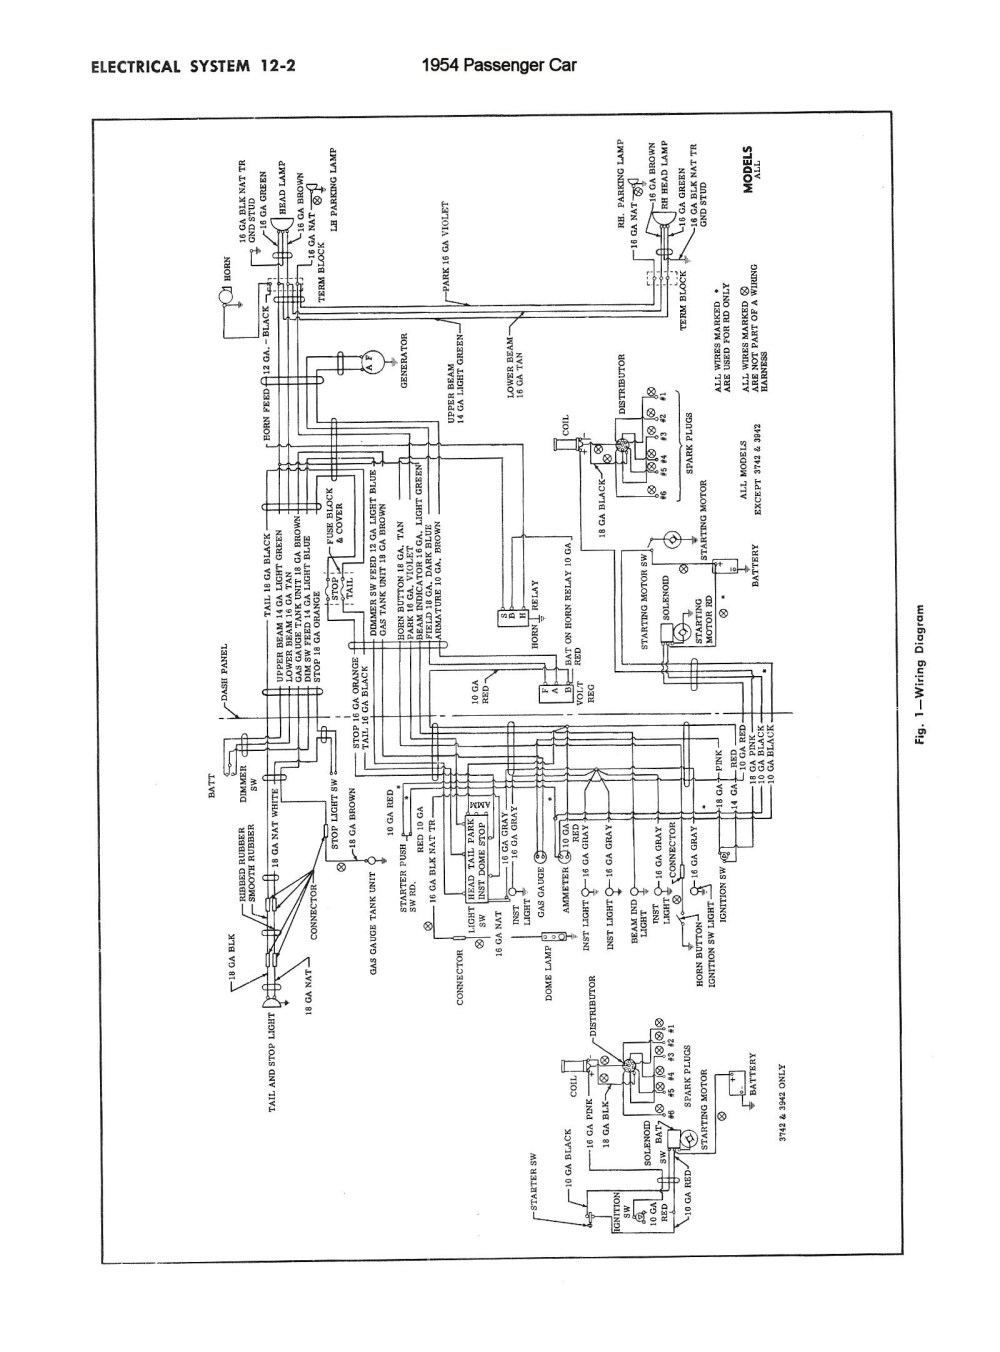 medium resolution of 1949 chevy deluxe wiring harness data diagram schematic 1949 chevy deluxe wiring harness